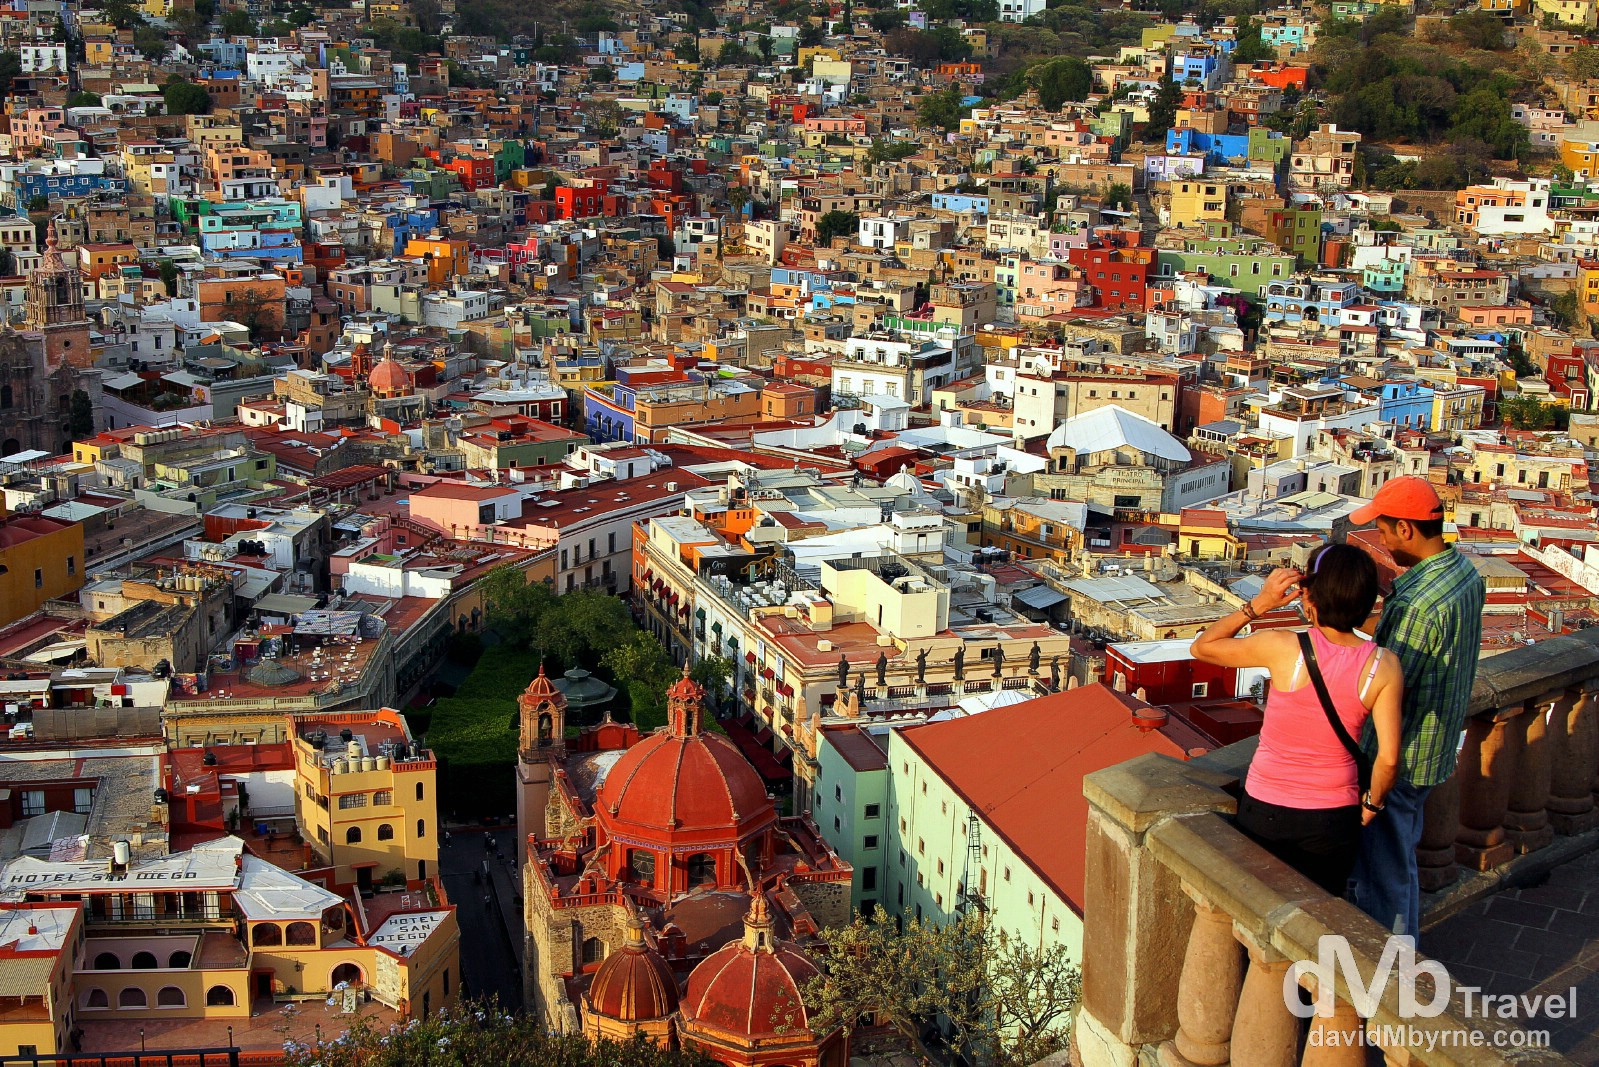 Overlooking UNESCO World Heritage listed Quanajuato as the sun sets from Panoromica. Riding the (very short) Funicular from behind Teatro Juarez to the top of San Miguel Hill is one of the must-do Guanajuato activities - you could of course walk up or, better still & as I did, get the funicular up and get lost in the jumble of photographic lanes by walking down (it's not far). This vantage point is visible from all over the city as it houses a 28-metre-tall statue, called El Pipila, of an independence hero who wore a stone slab on his back to protect himself while burning the Spanish troops holed up in the city's  Alhóndiga, or granary, in September 1810. The views here are spectacular, especially towards the end of the day when the light is at its softest. Guanajuato, Mexico. April 23rd 2013.